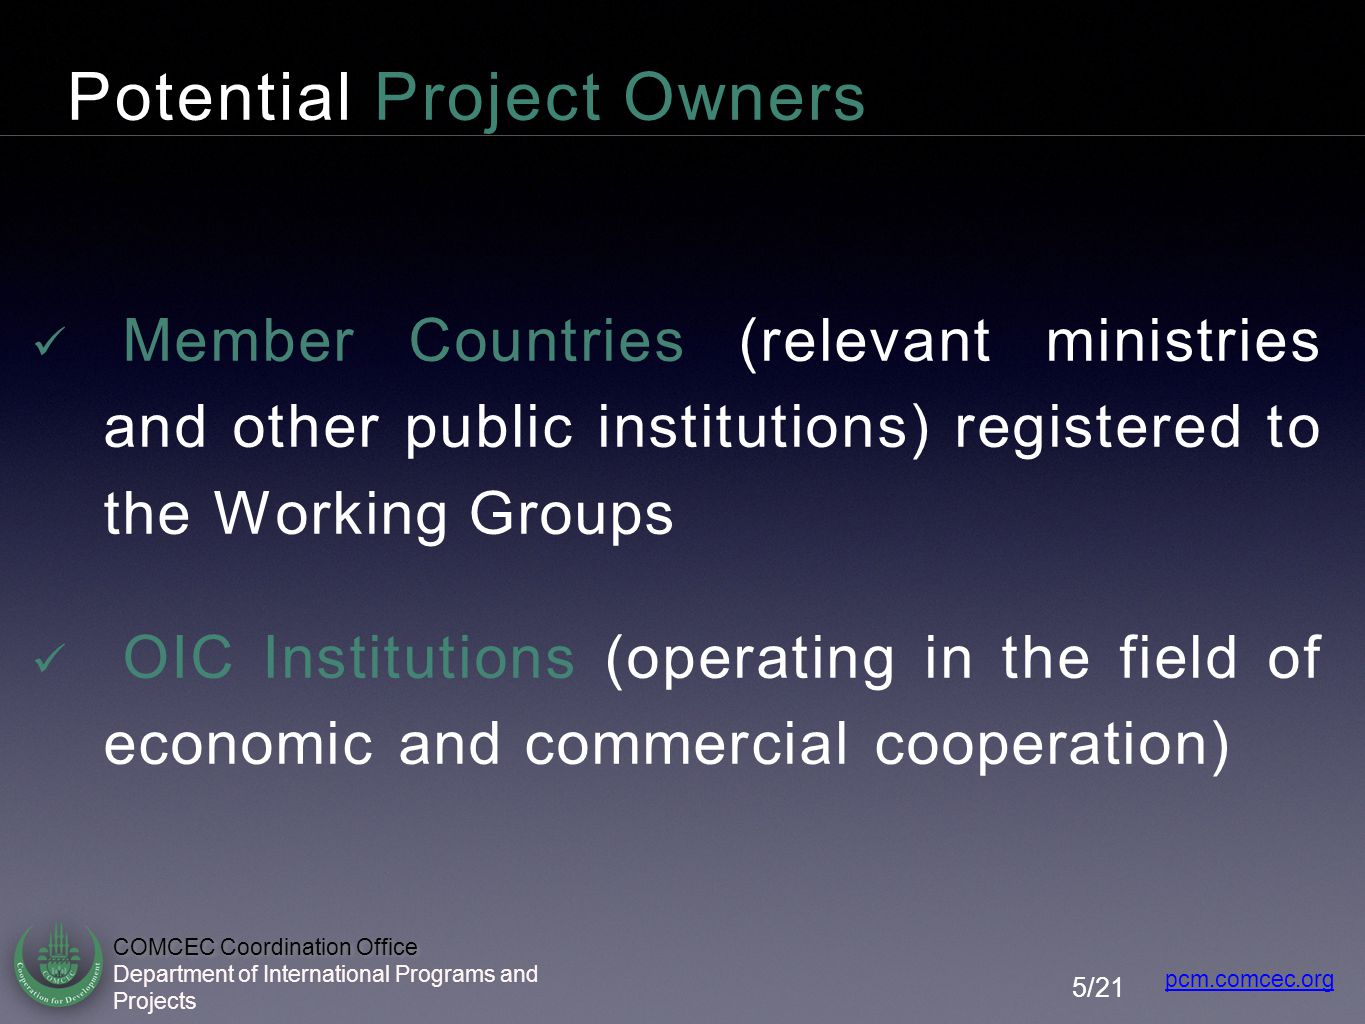 Potential Project Owners